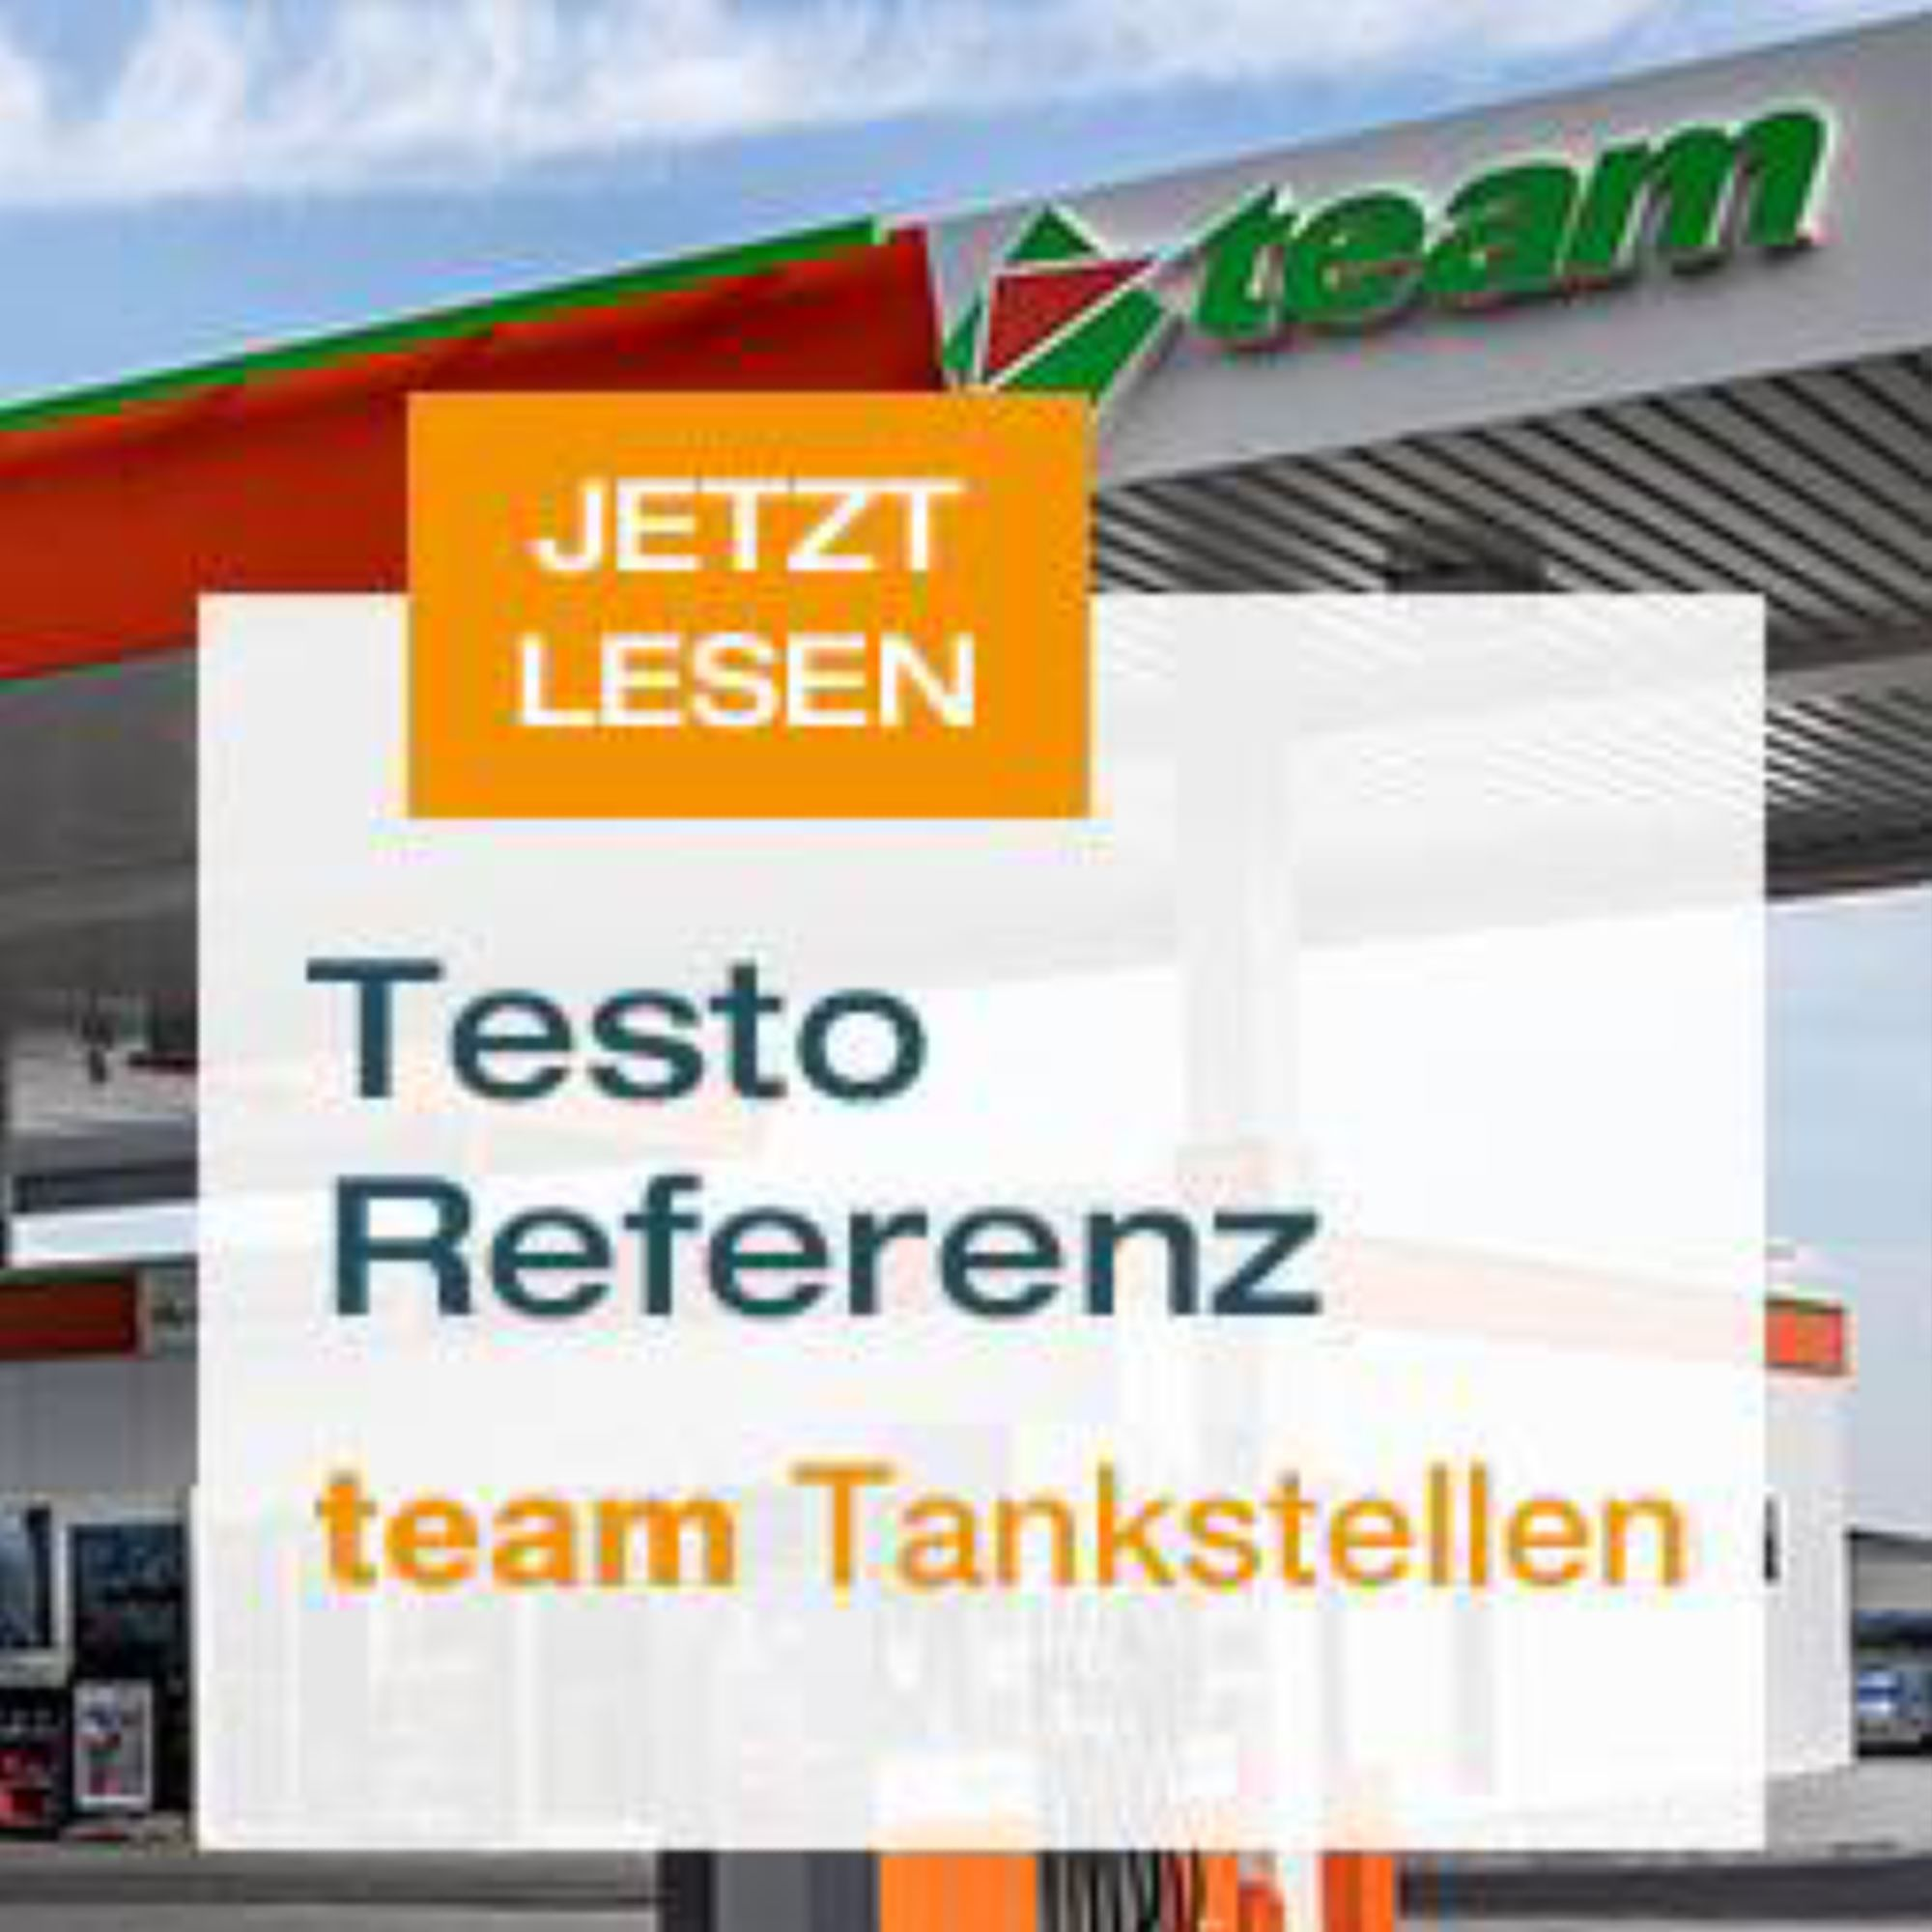 floating-banner-small-referenz-teamtankstellen-250x250px.jpg